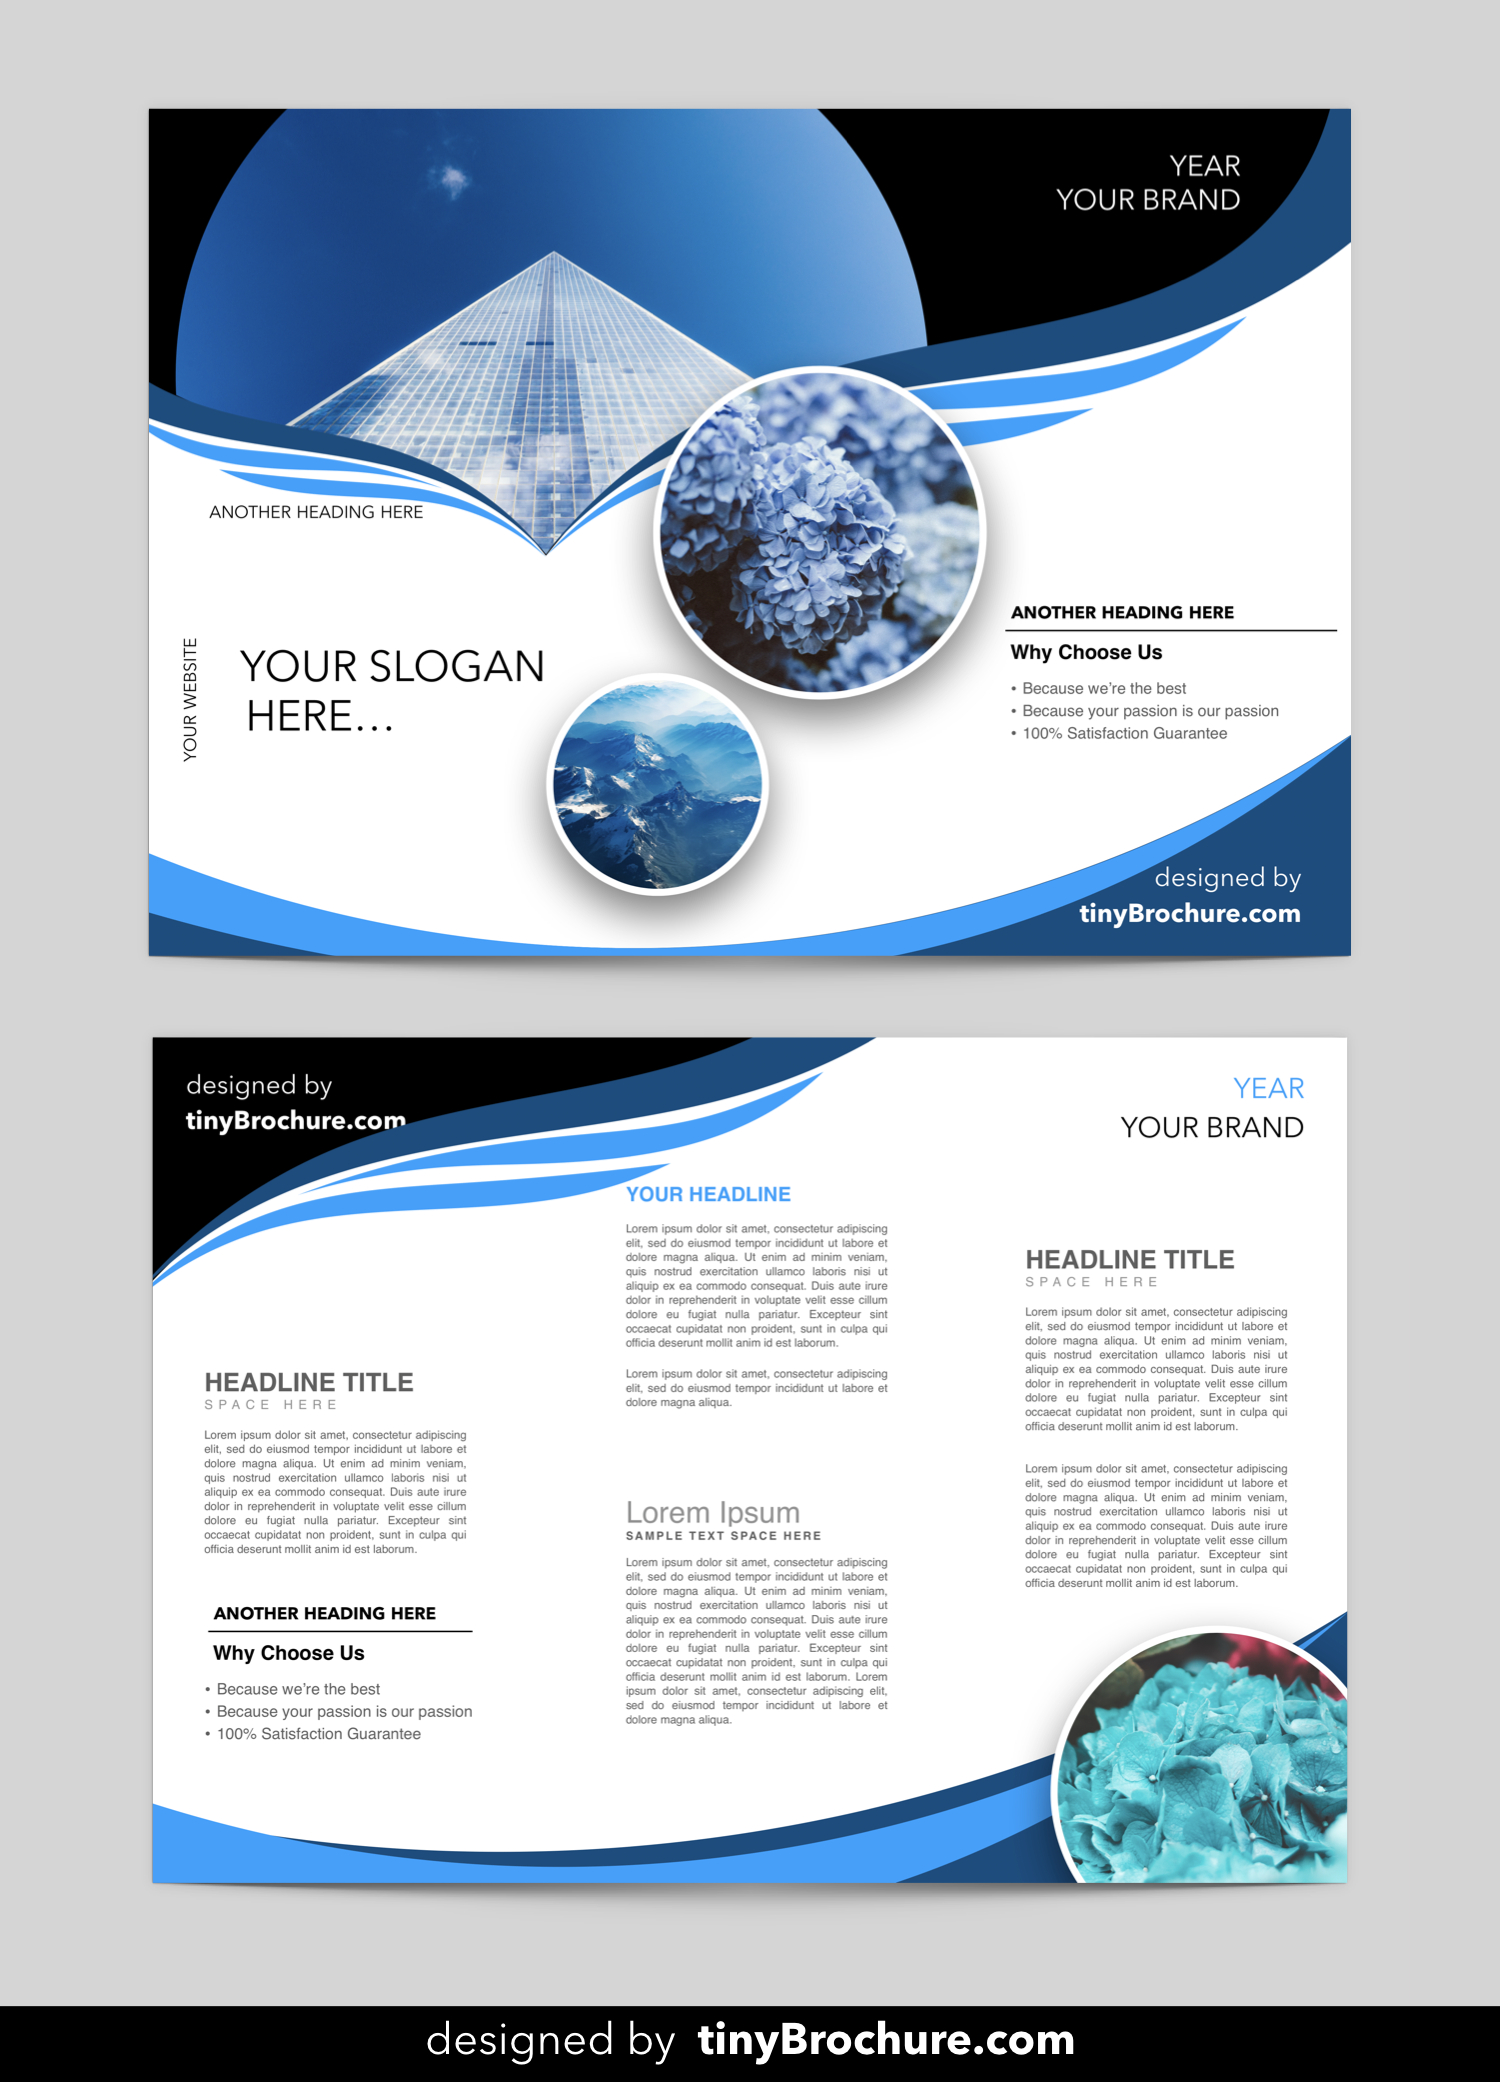 003 Microsoft Brochure Template Free Ideas Wondrous With Regard To Free Brochure Templates For Word 2010